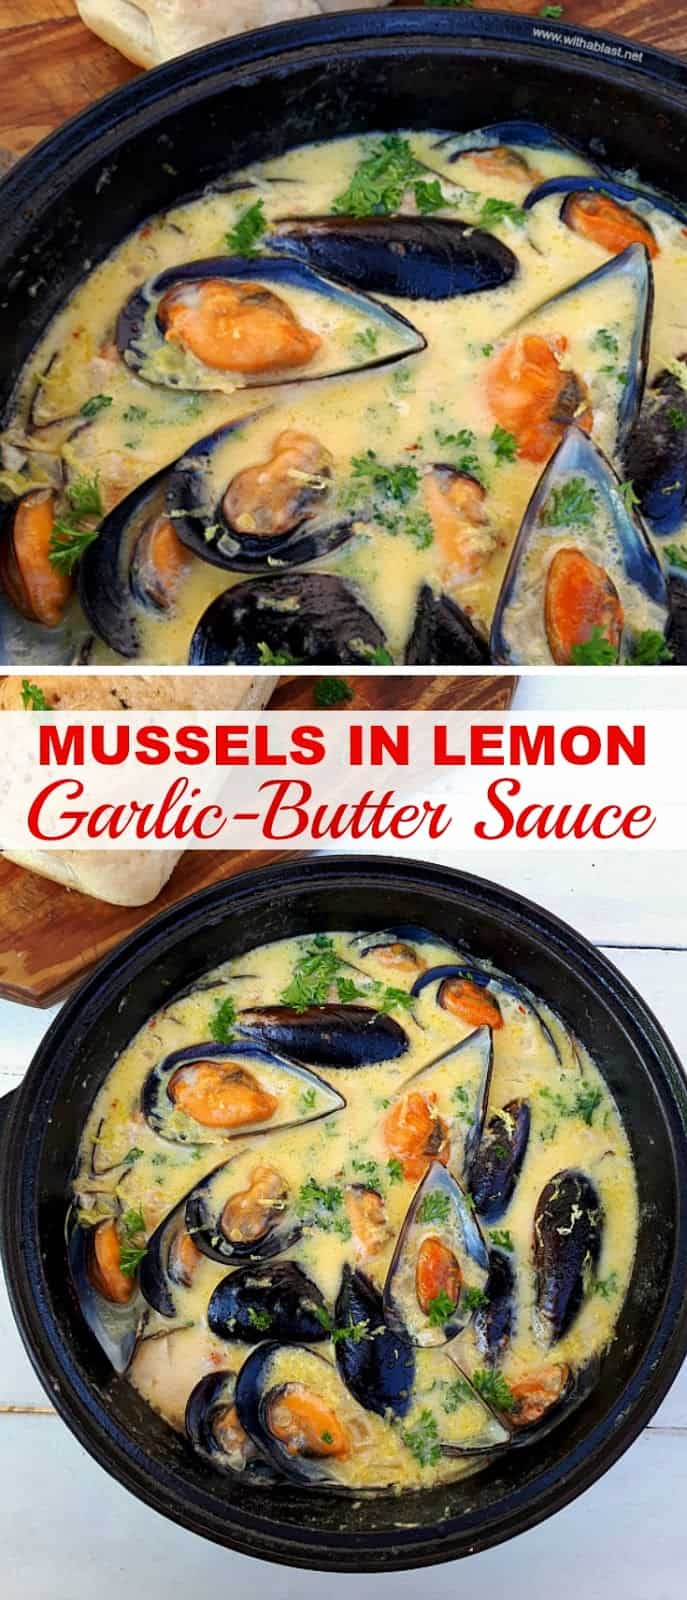 Creamy, garlic-butter Lemon Mussels ~ One of the most delicious appetizers ever !